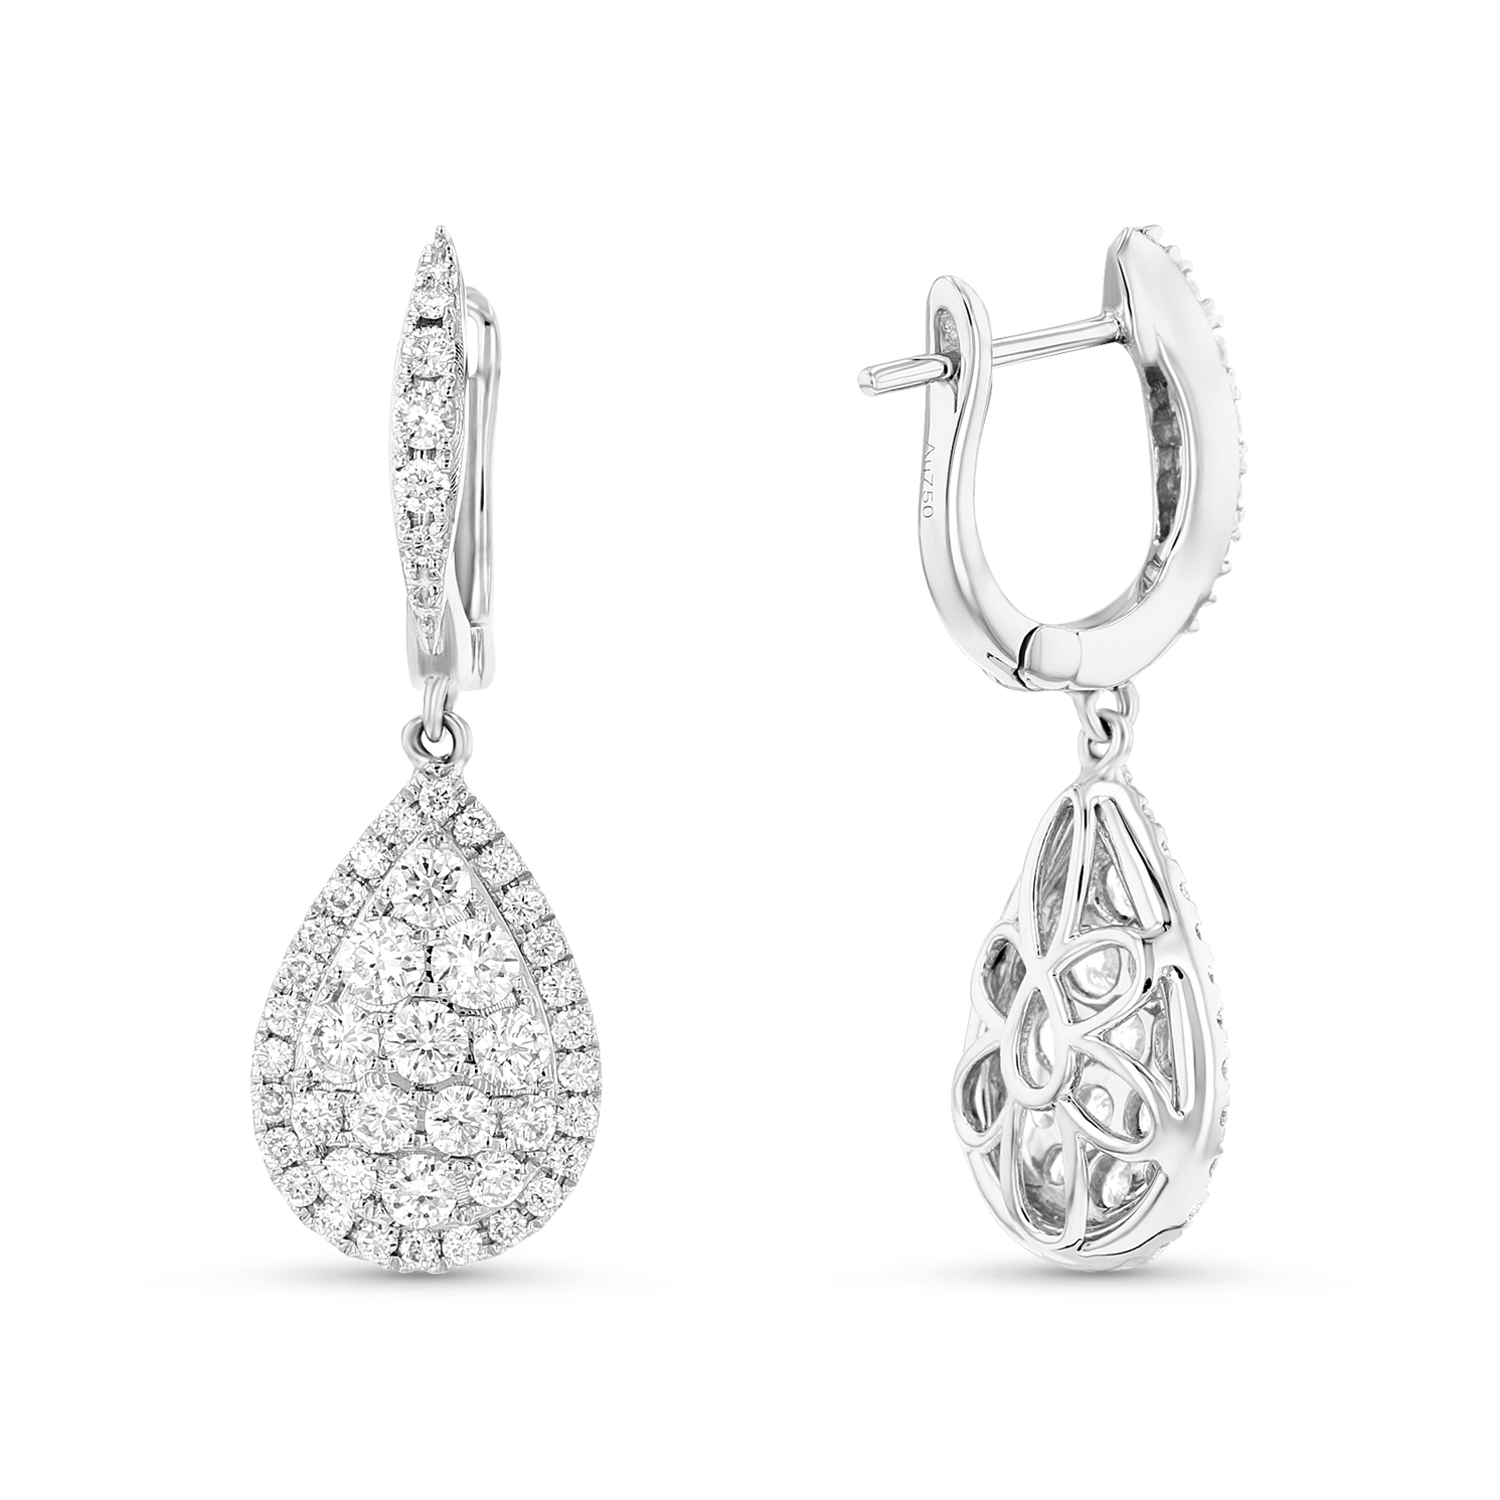 View 0.99ctw Diamond Pear Shaped Earrings in 18k White Gold